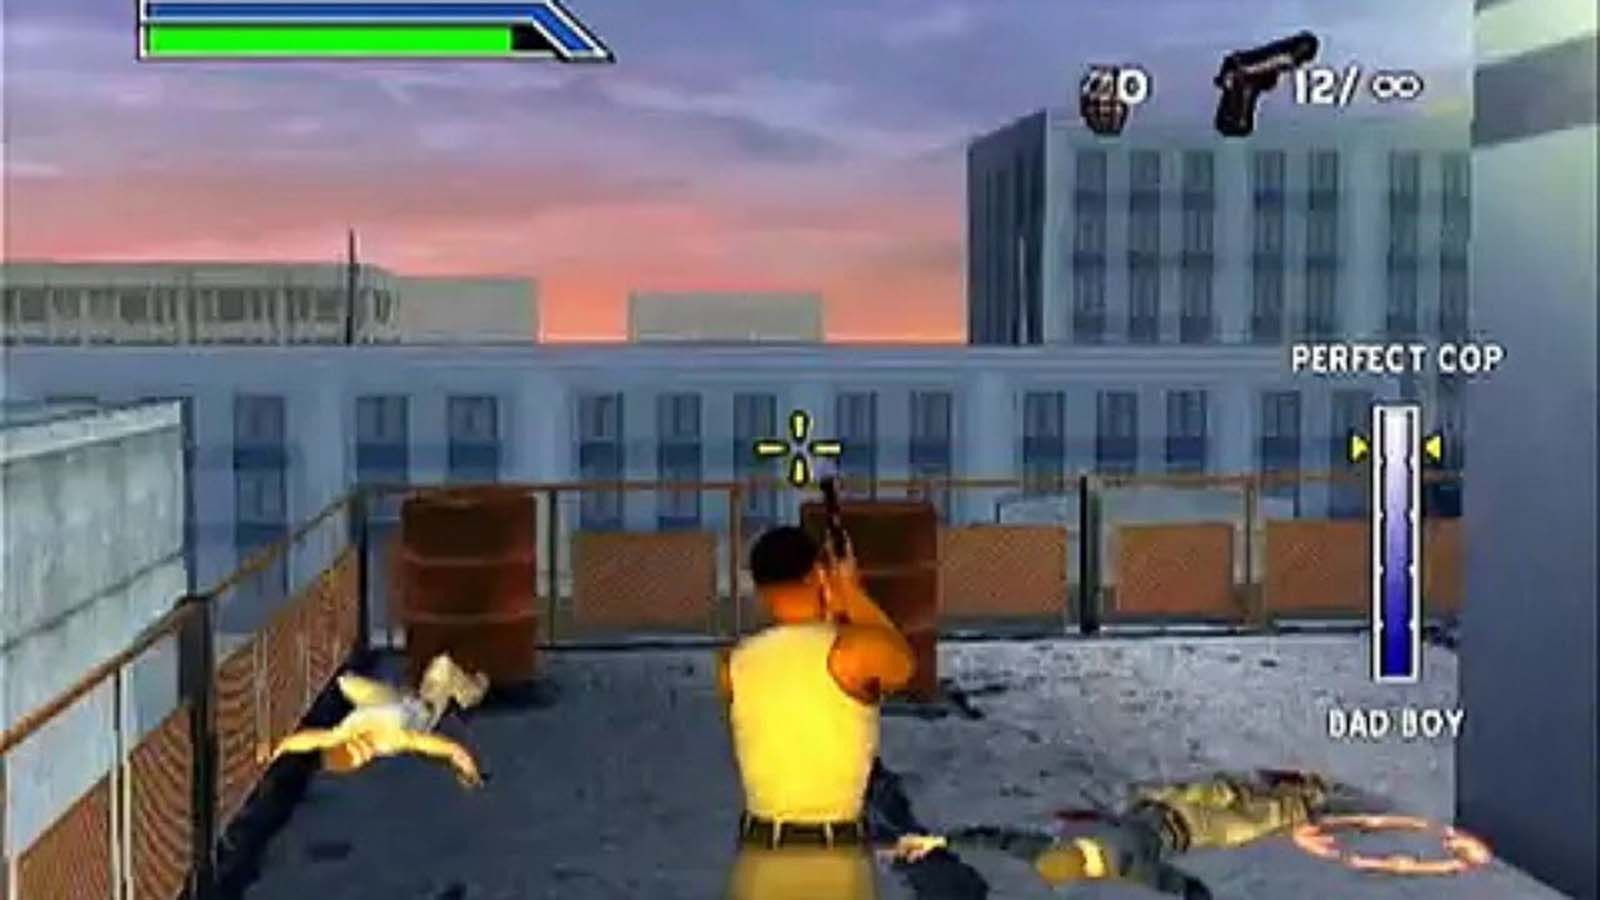 Bad boy 2 game free download doom 2 hell on earth free online game